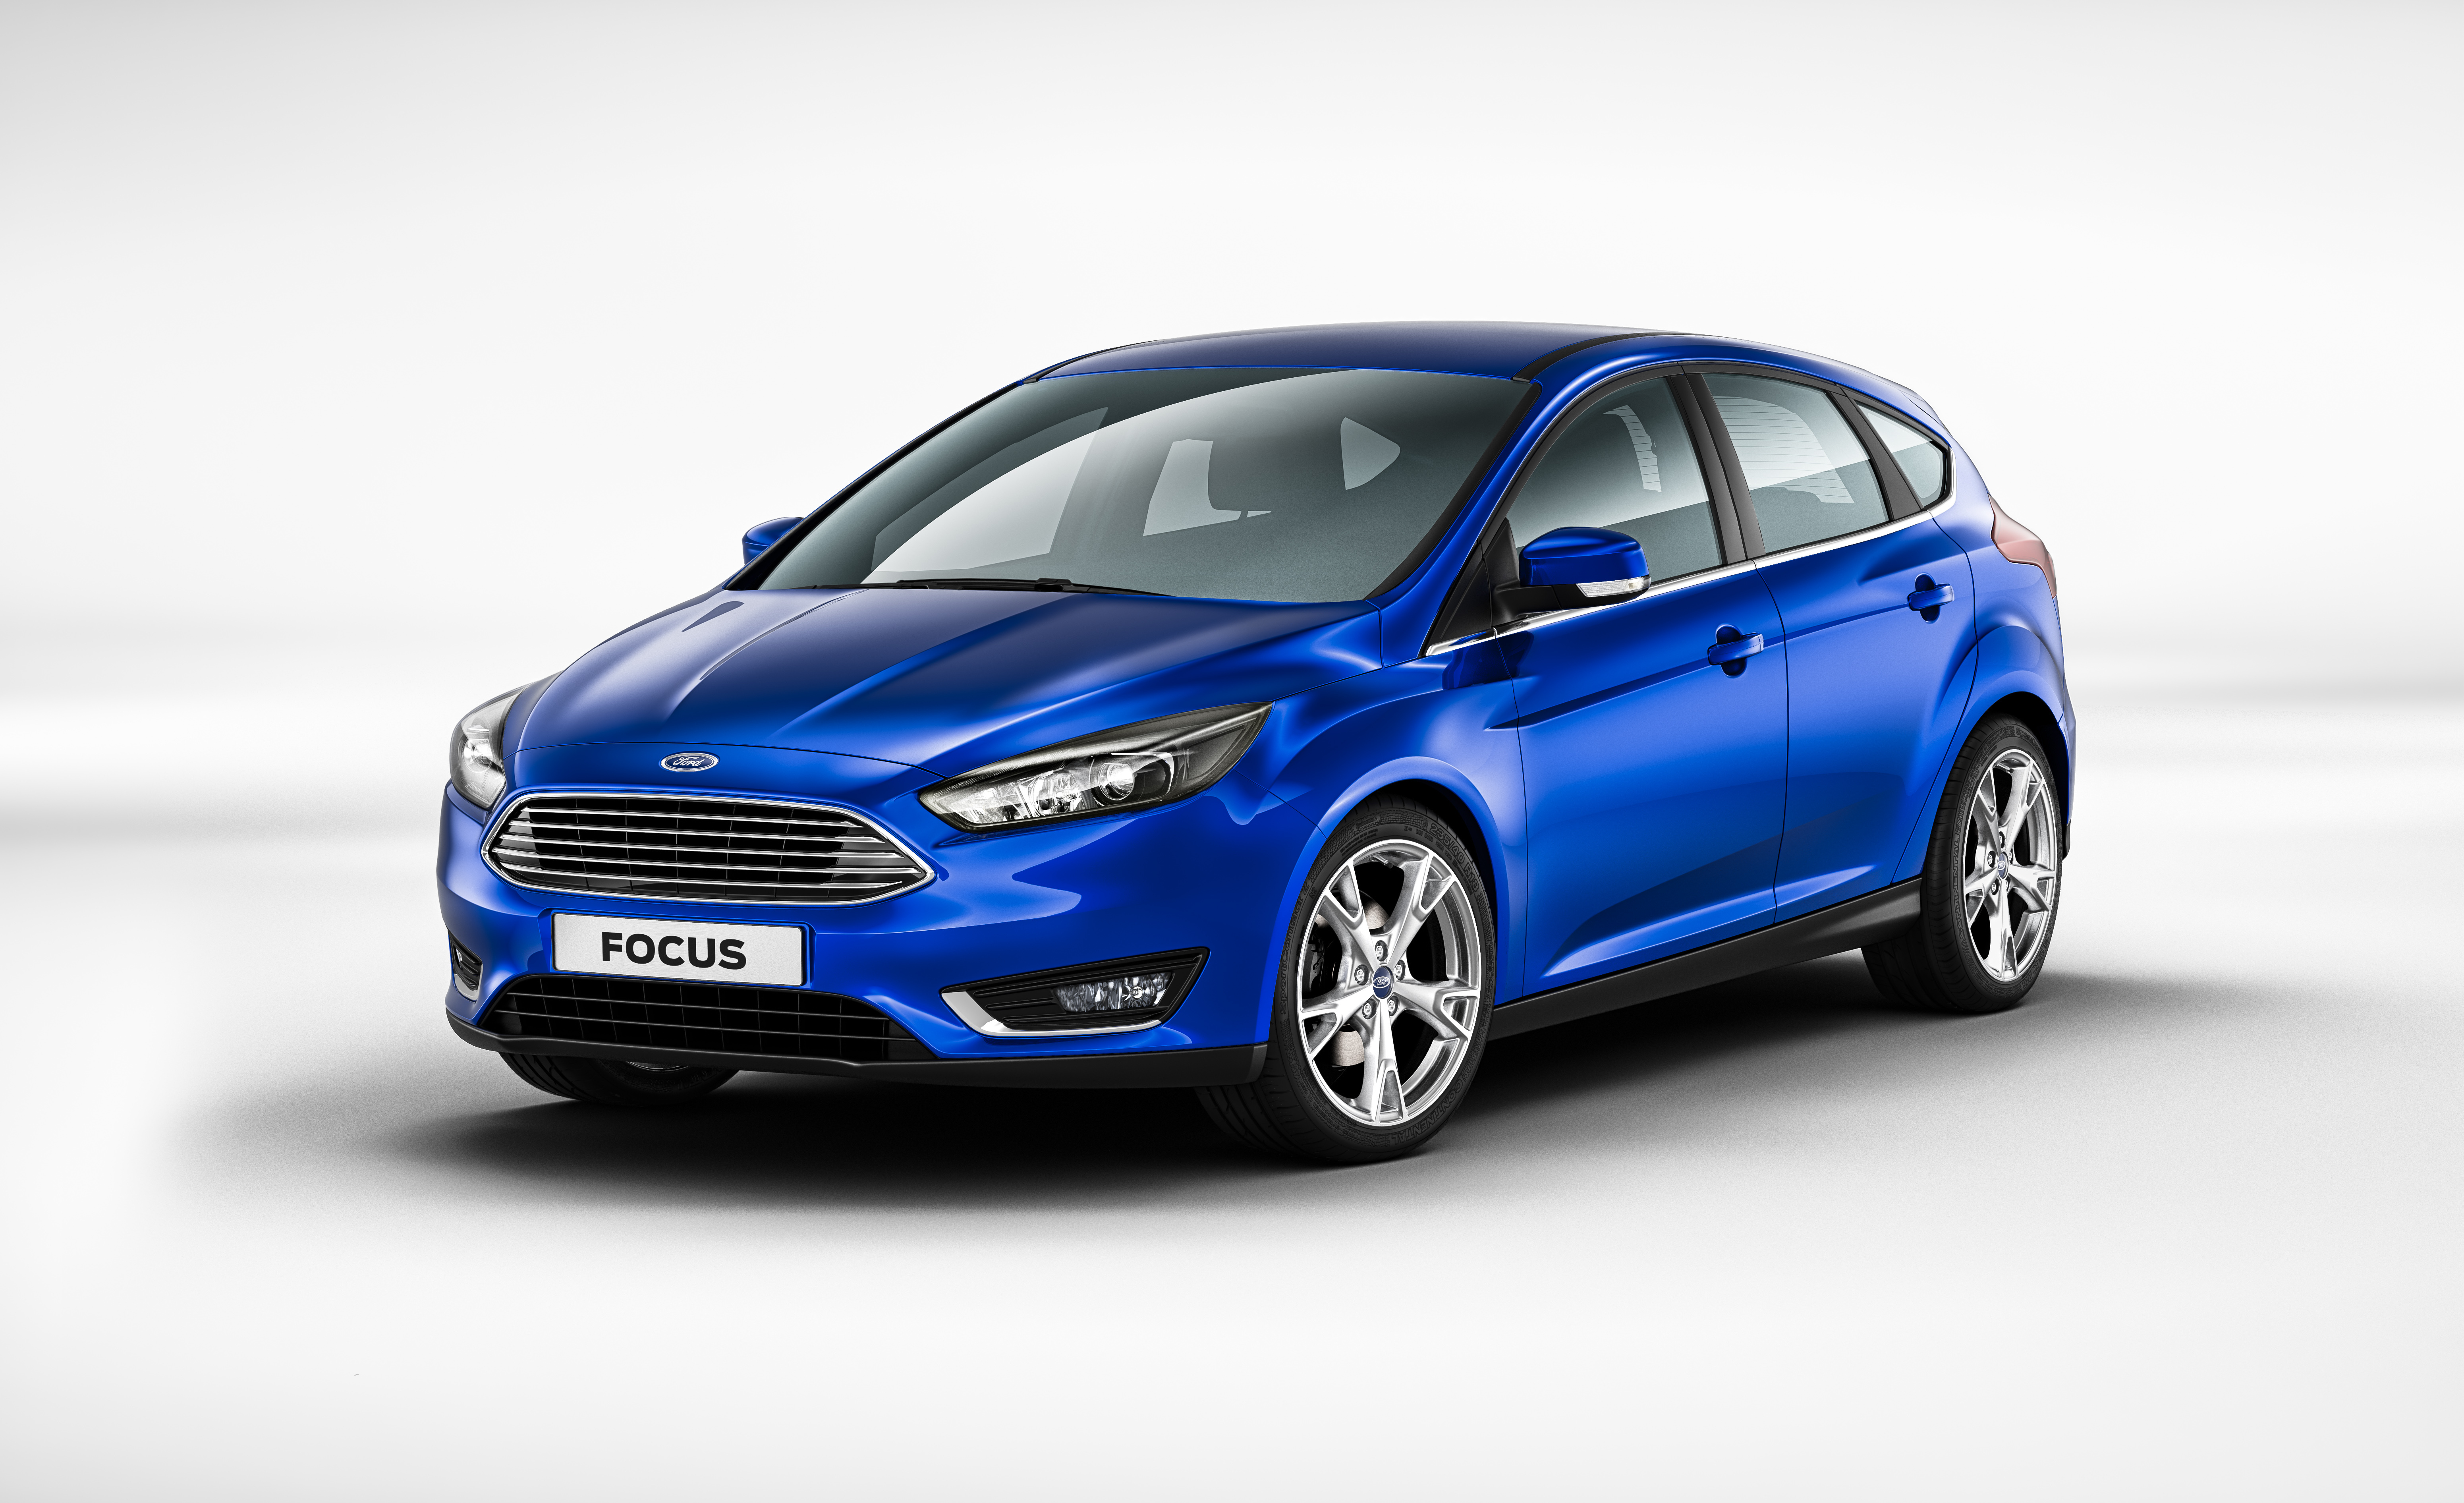 Redesigned Ford Focus delivers 1.0-liter EcoBoost(R) engine, new exterior design, completely revised interior and advanced new technologies for improved customer comfort and safety. (Photo: Business Wire)